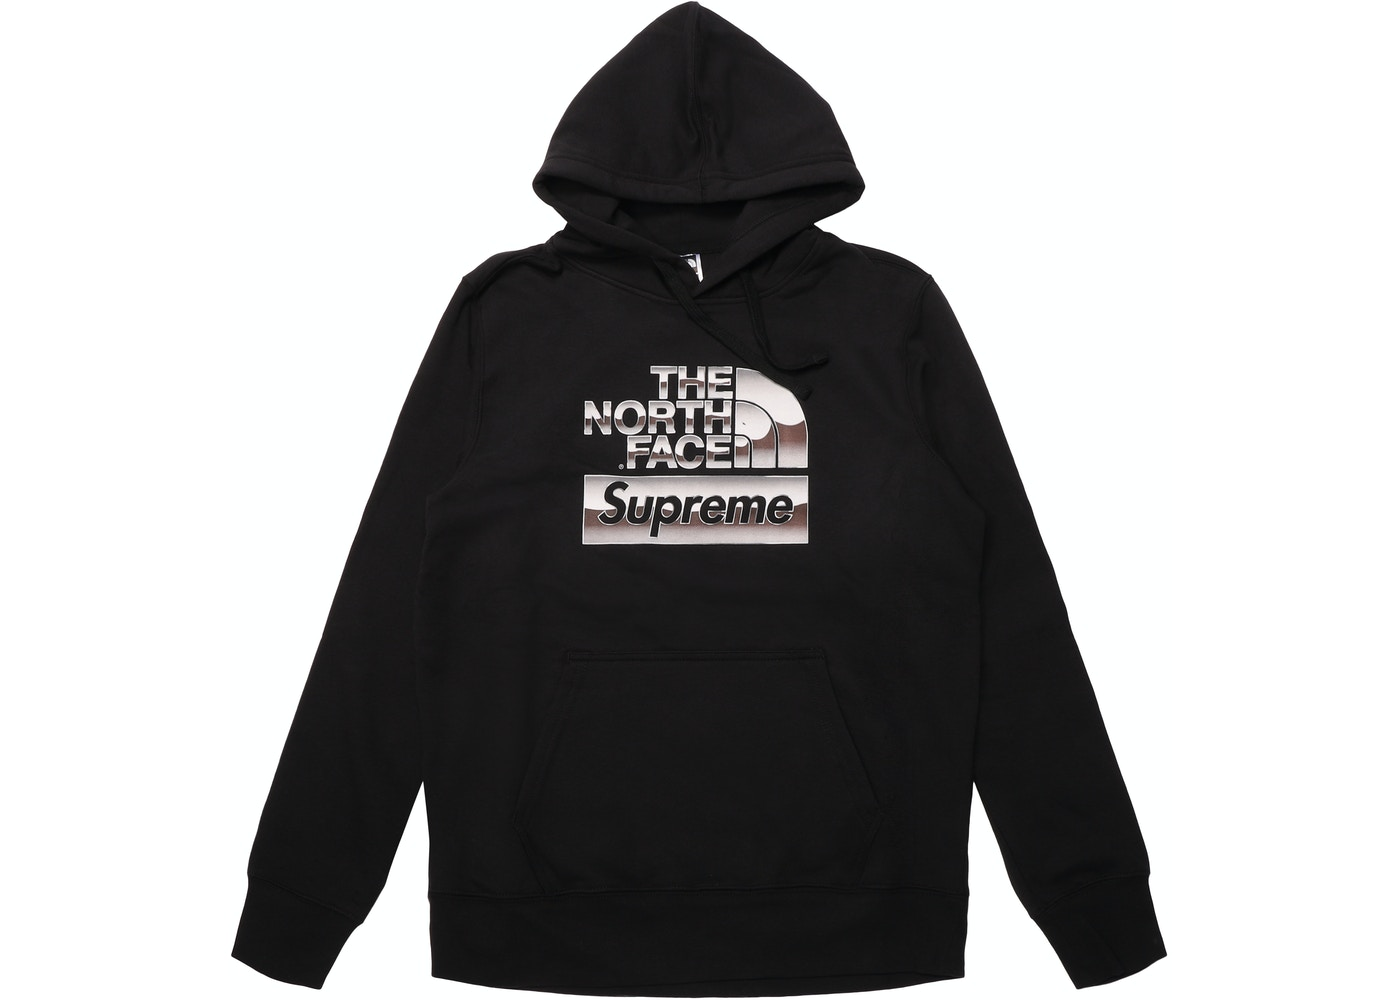 401a3bd67 Supreme The North Face Metallic Logo Hooded Sweatshirt Black